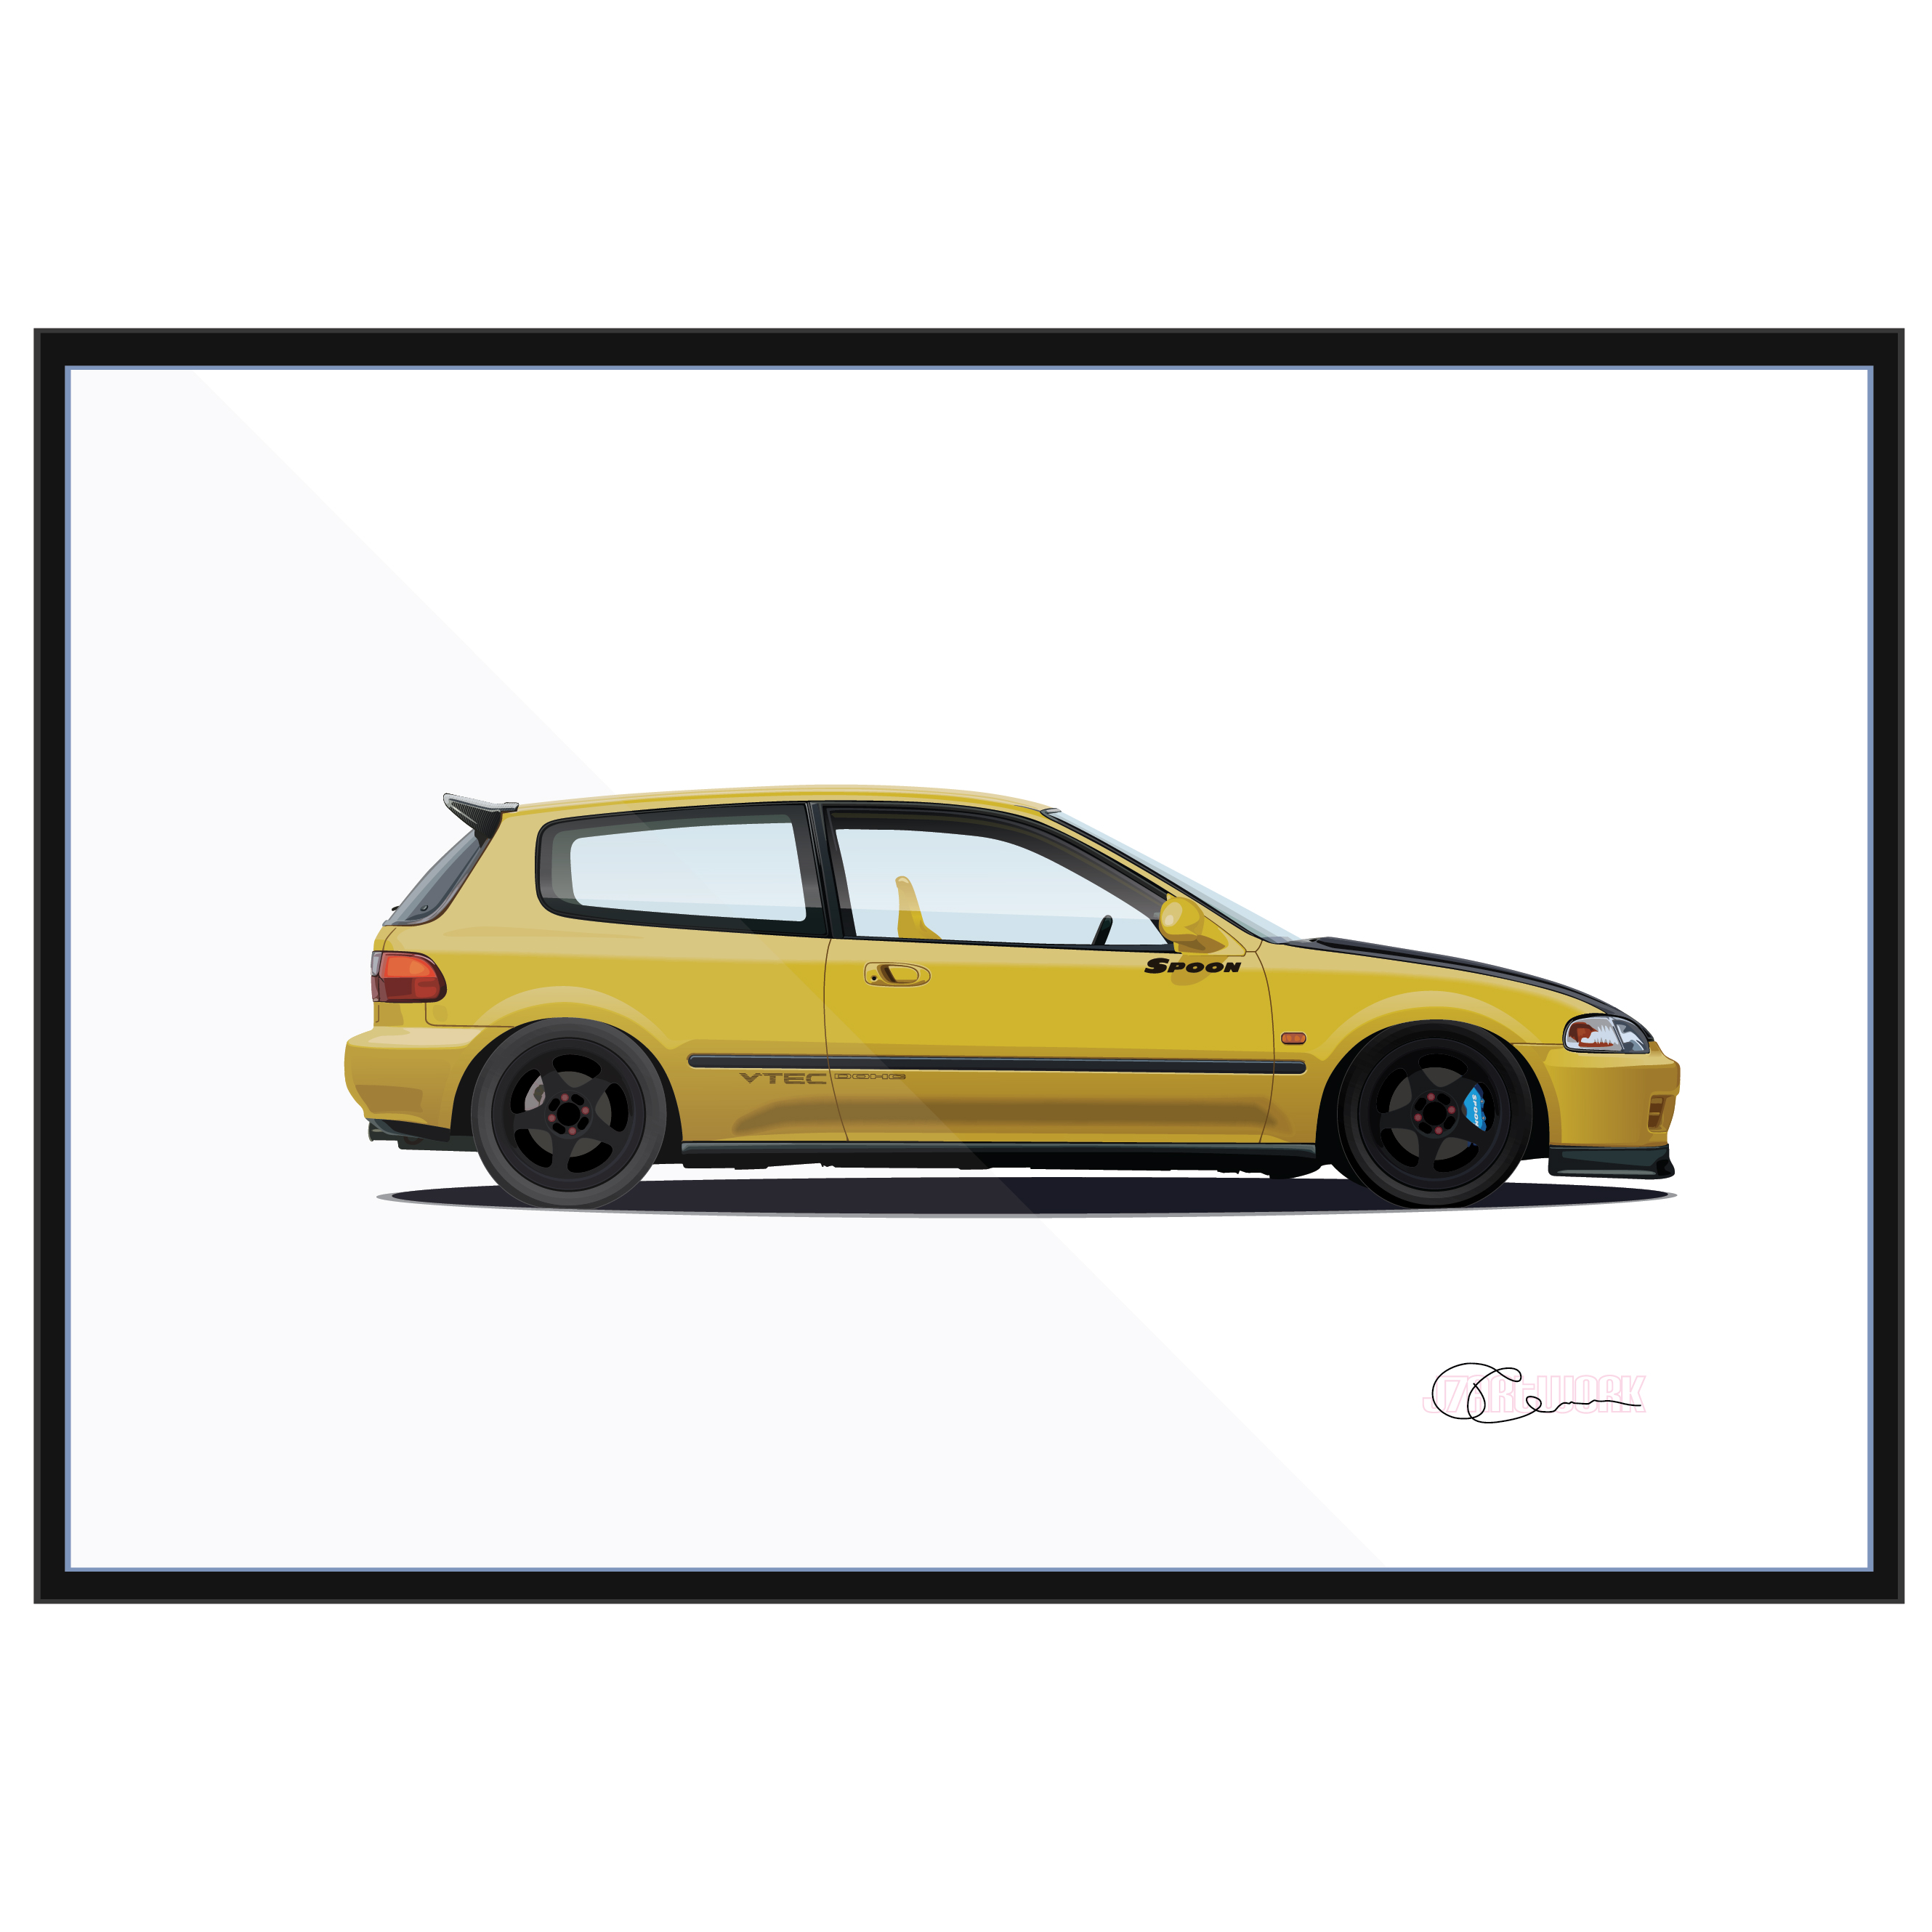 honda civic eg spoon yellow j7artwork. Black Bedroom Furniture Sets. Home Design Ideas